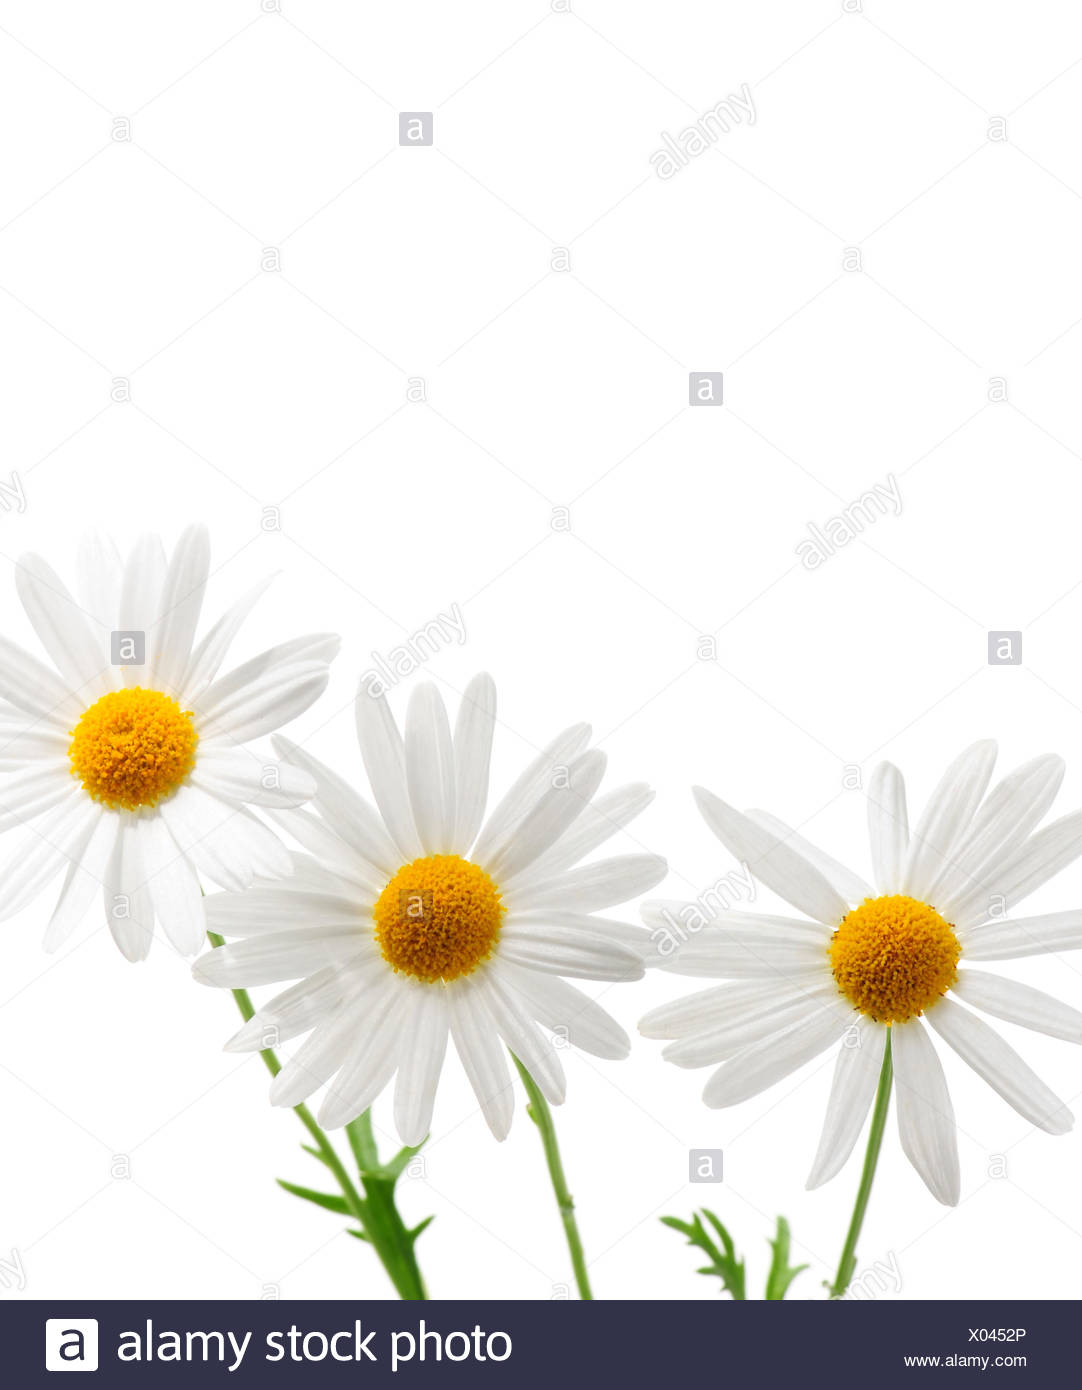 Parts flowers daisies stock photos parts flowers daisies stock flower plant flowers stock image izmirmasajfo